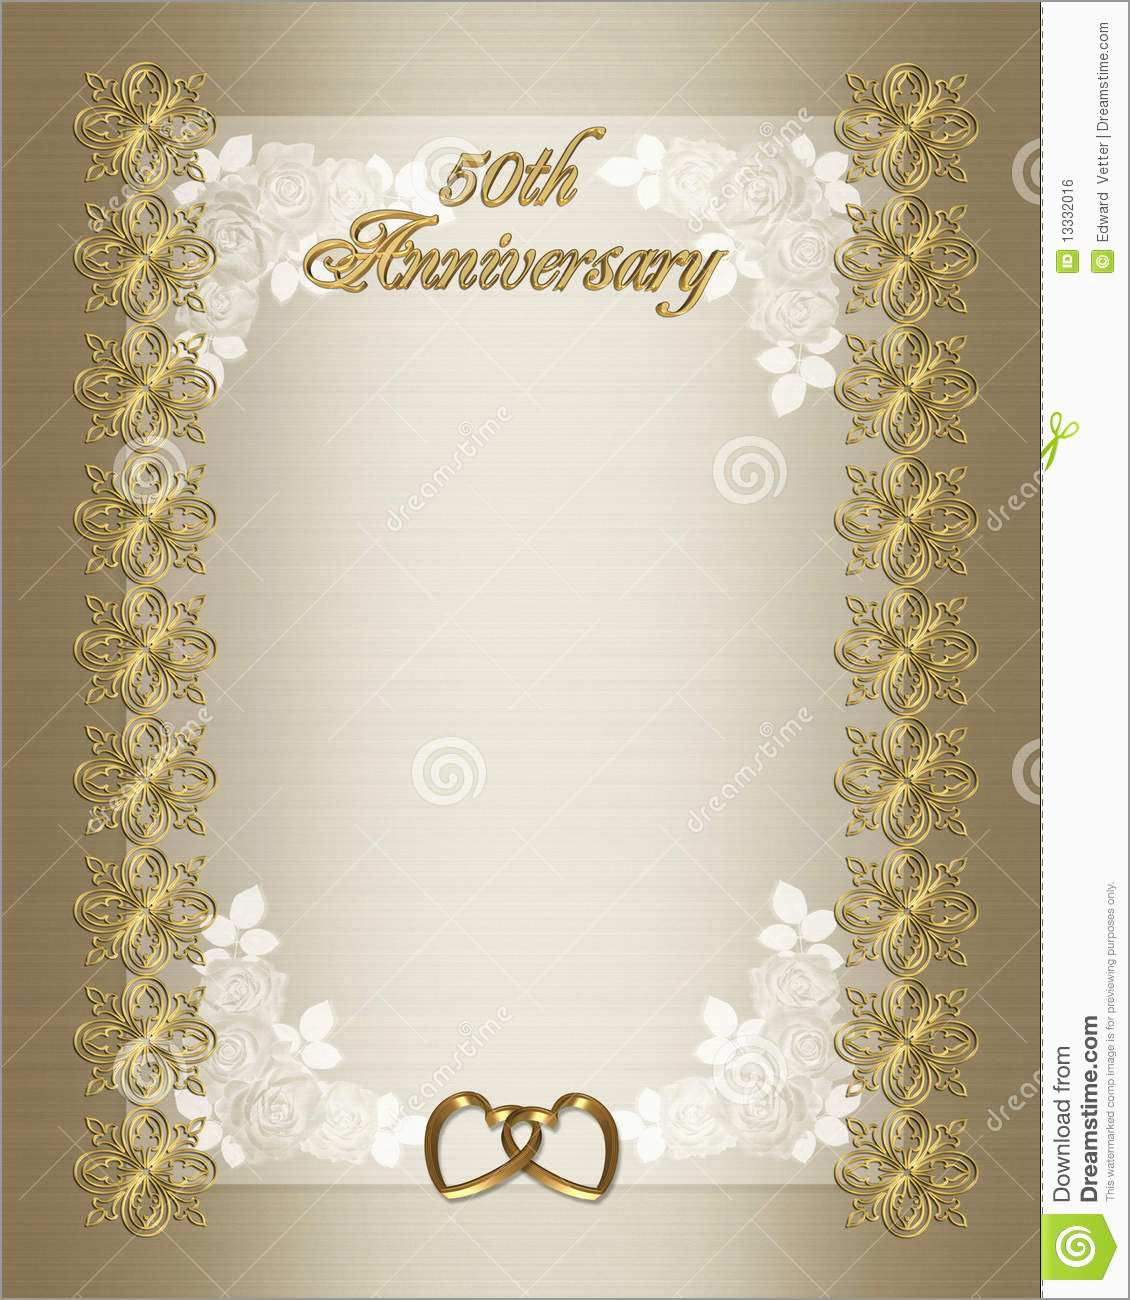 50th Wedding Anniversary Invitations Templates Free Download Marvelous 50th Wedding Anniversary Invitation Template Stock